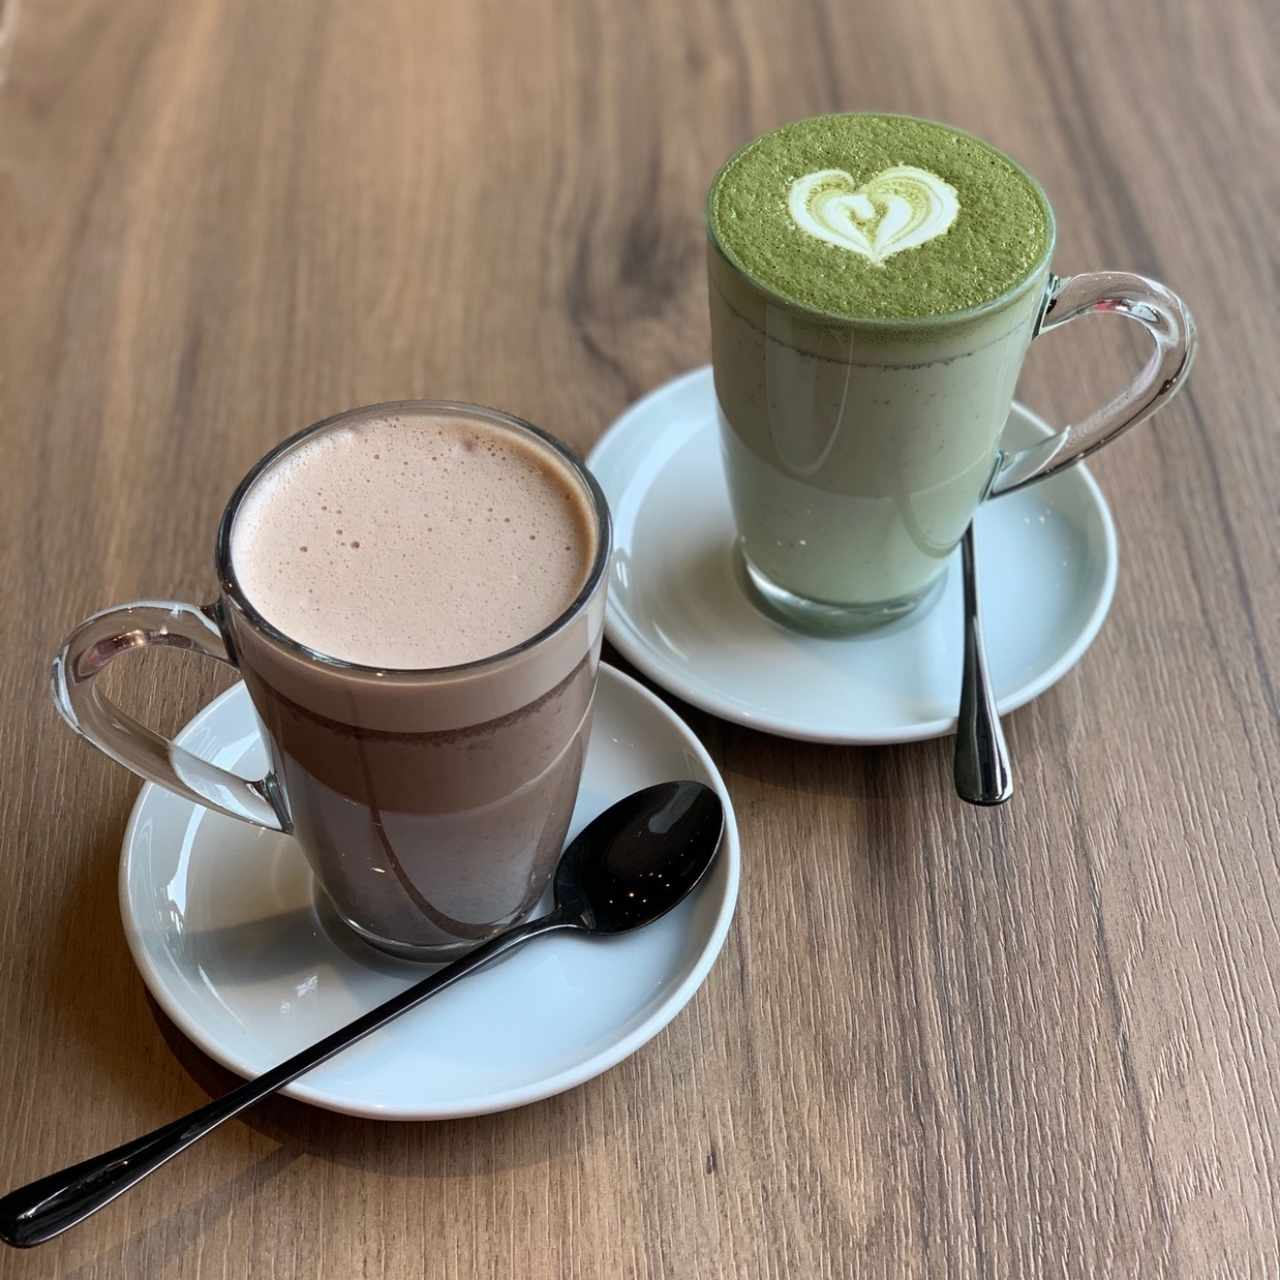 chocolate caliente y matcha